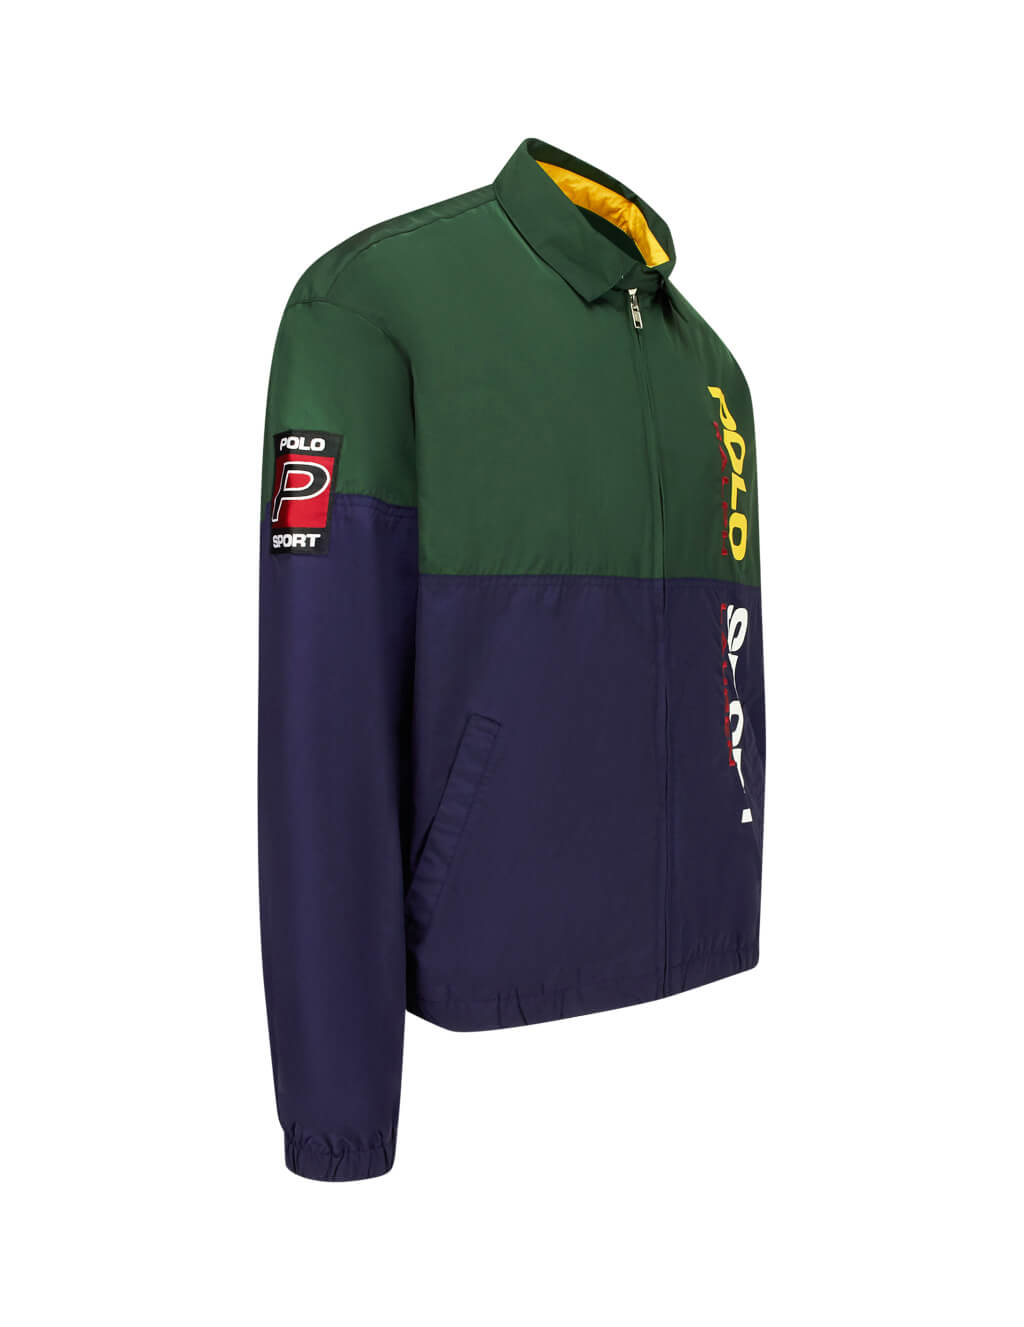 Polo Ralph Lauren Men's Giulio Fashion Green Polo Sport Windbreaker 710749785002